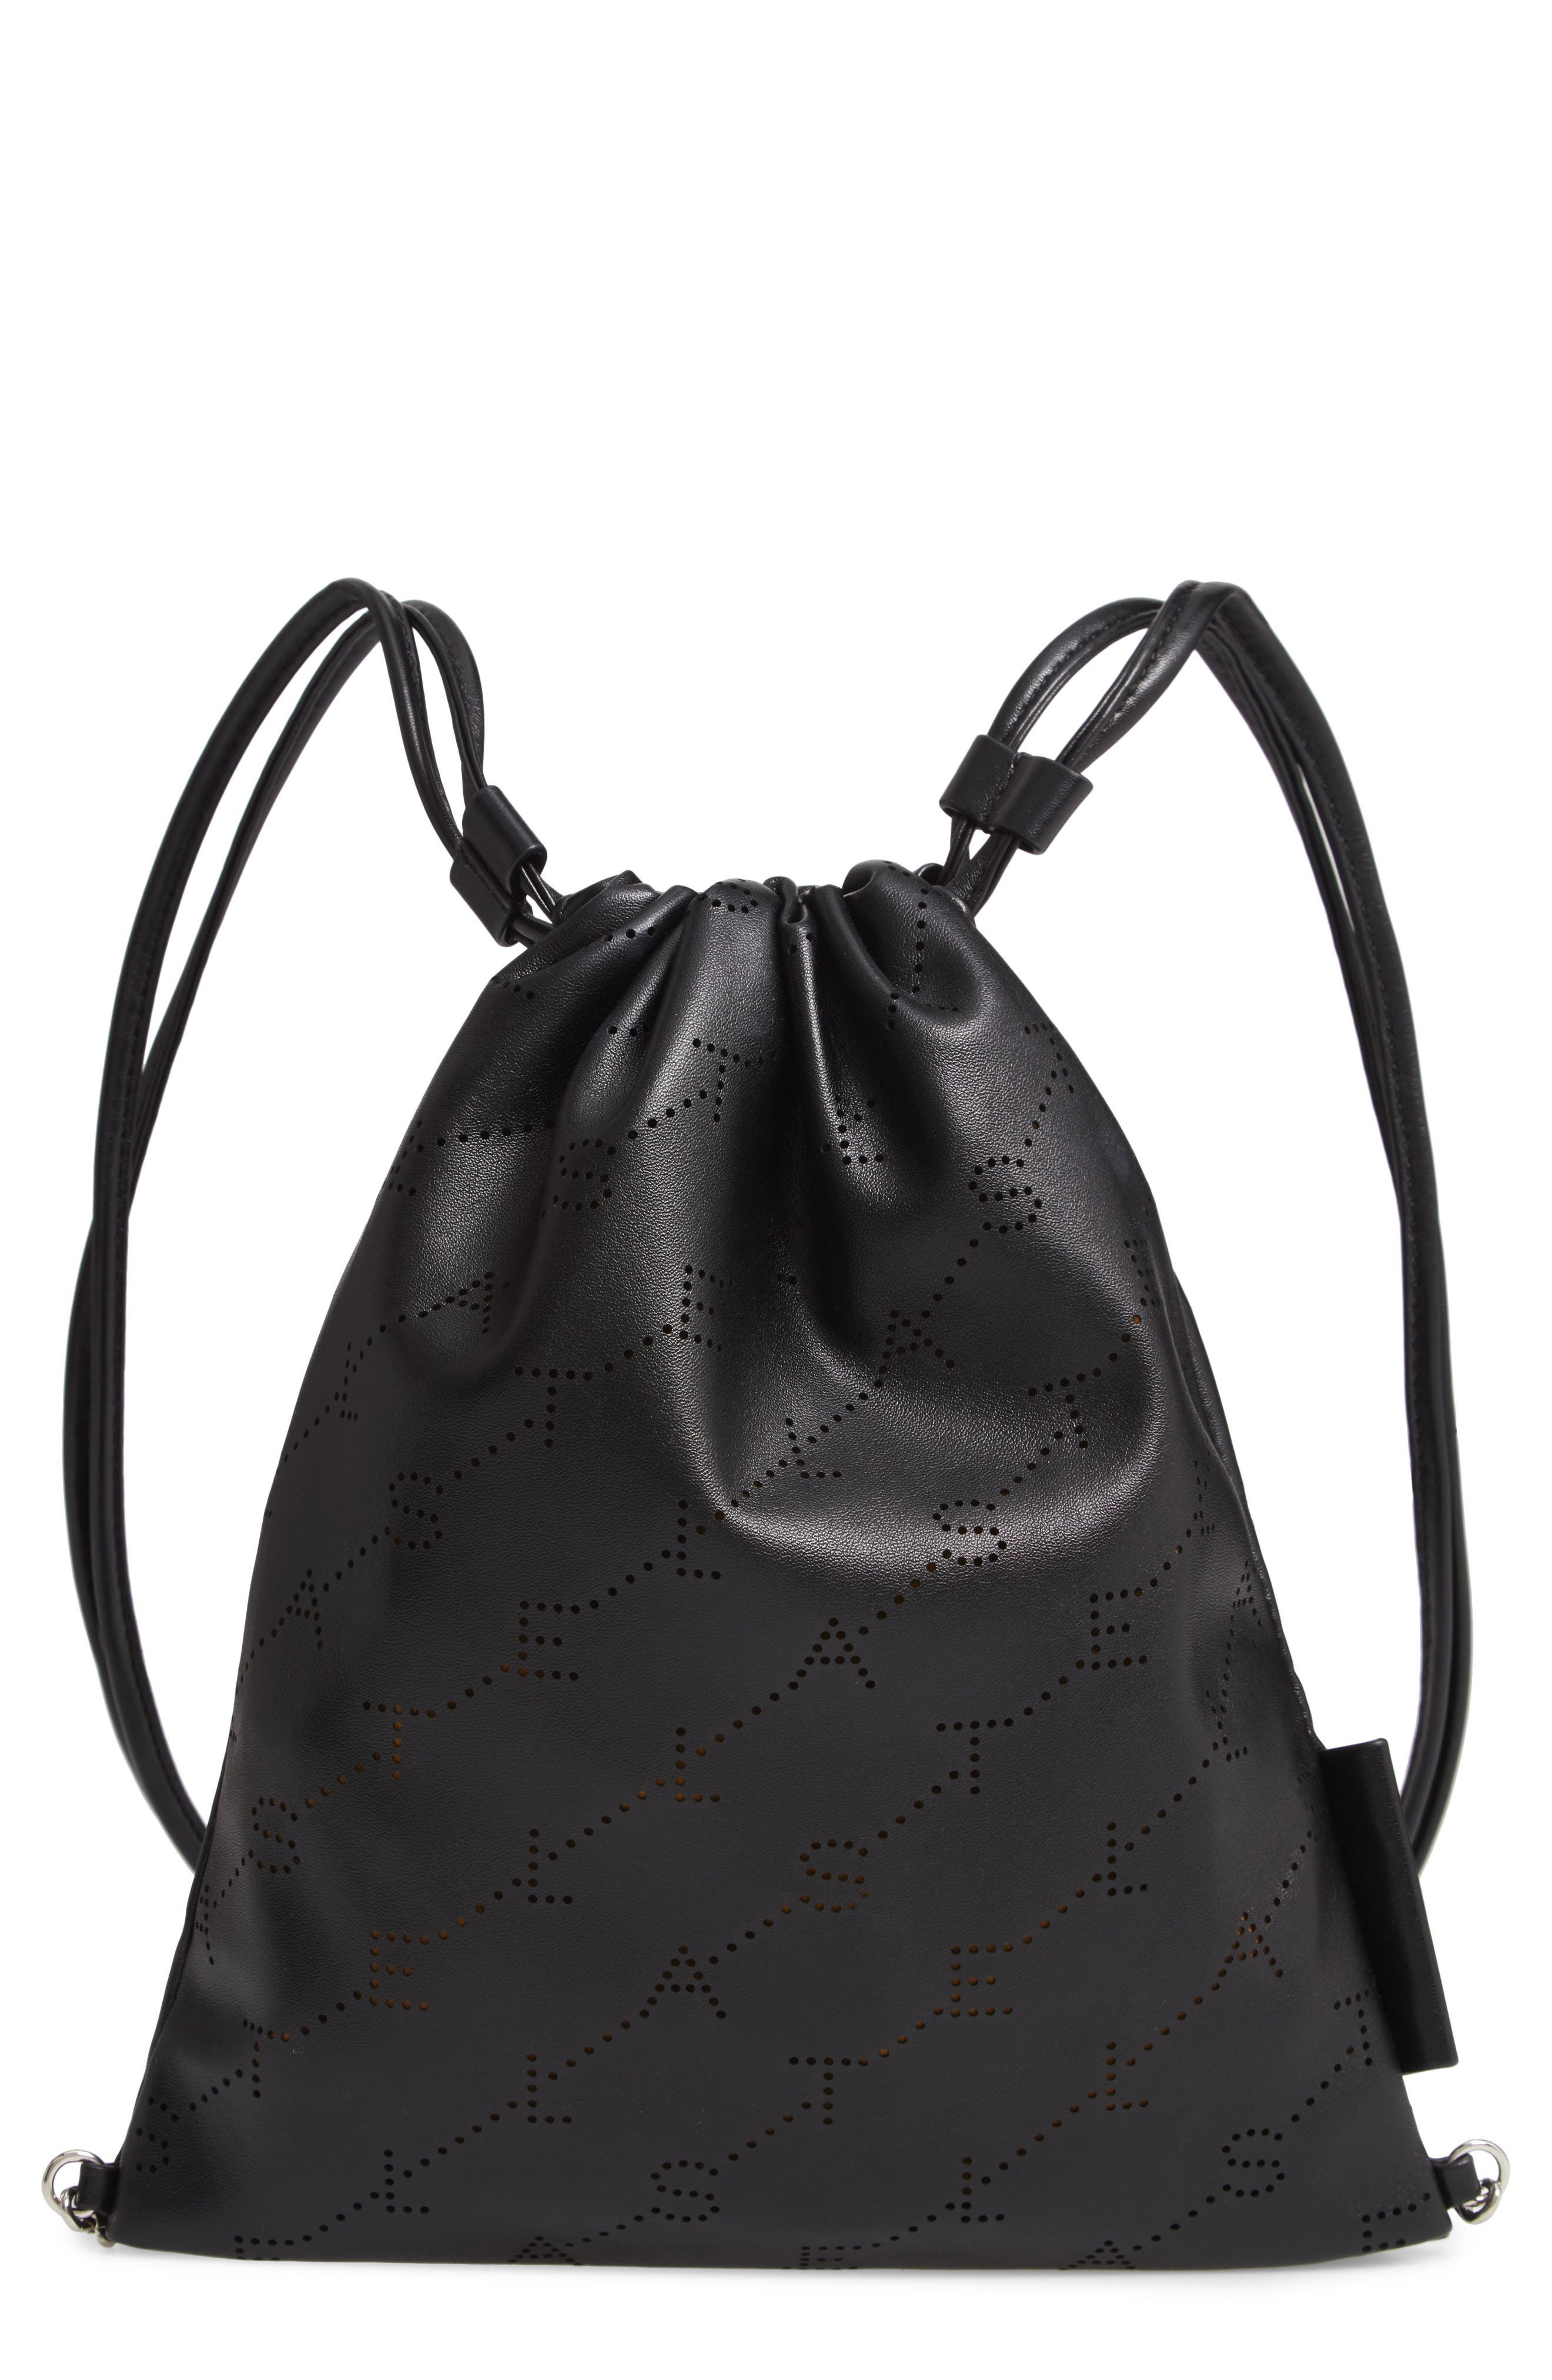 Stella Mccartney Perforated Logo Mini Faux Leather Drawstring Backpack - Black